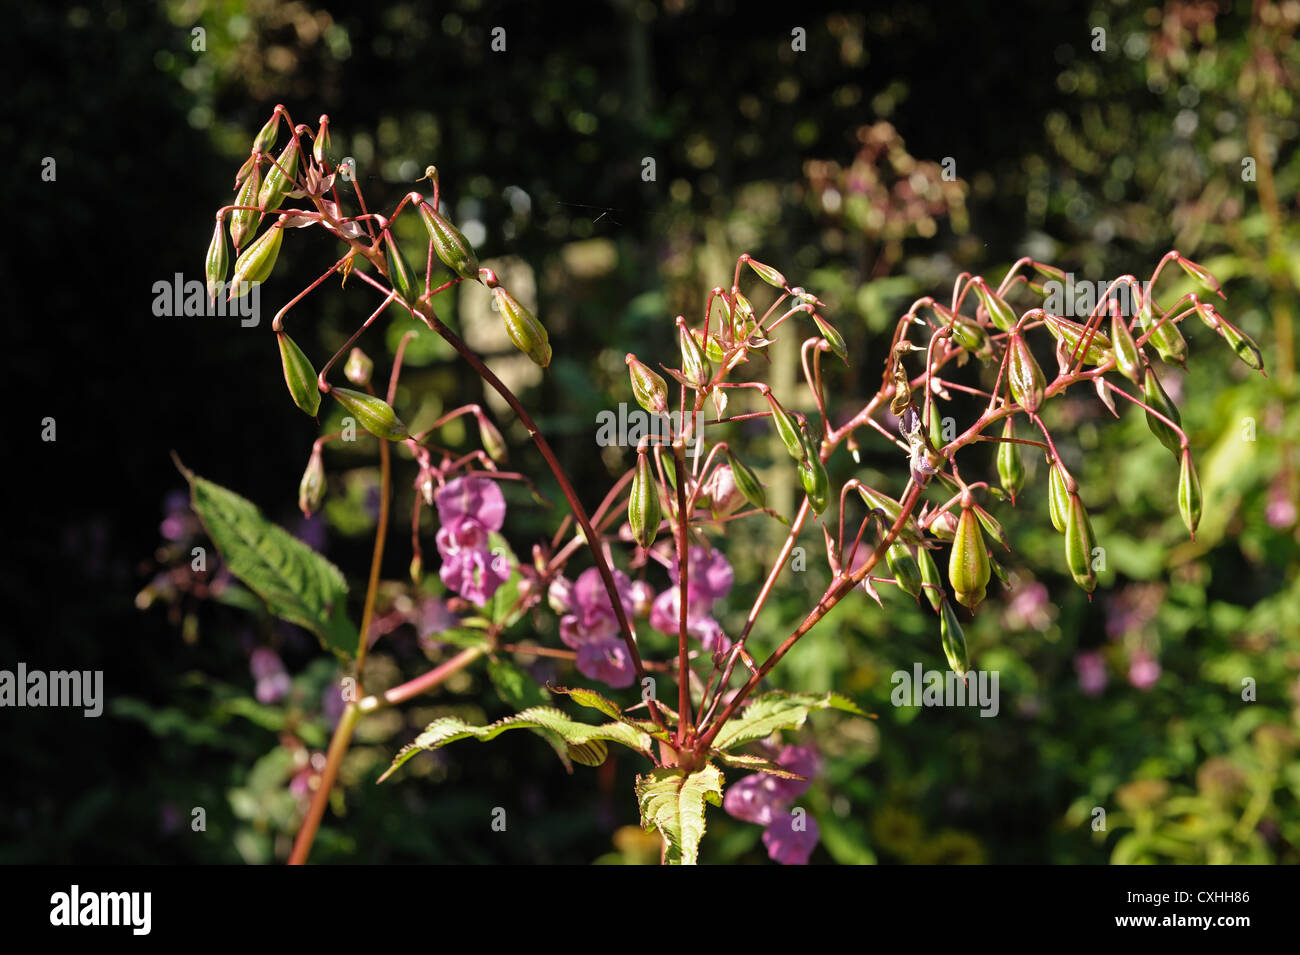 Himalayan balsam (Impatiens gladulifera) explosive seedpods and flowers of this invasive weed Stock Photo